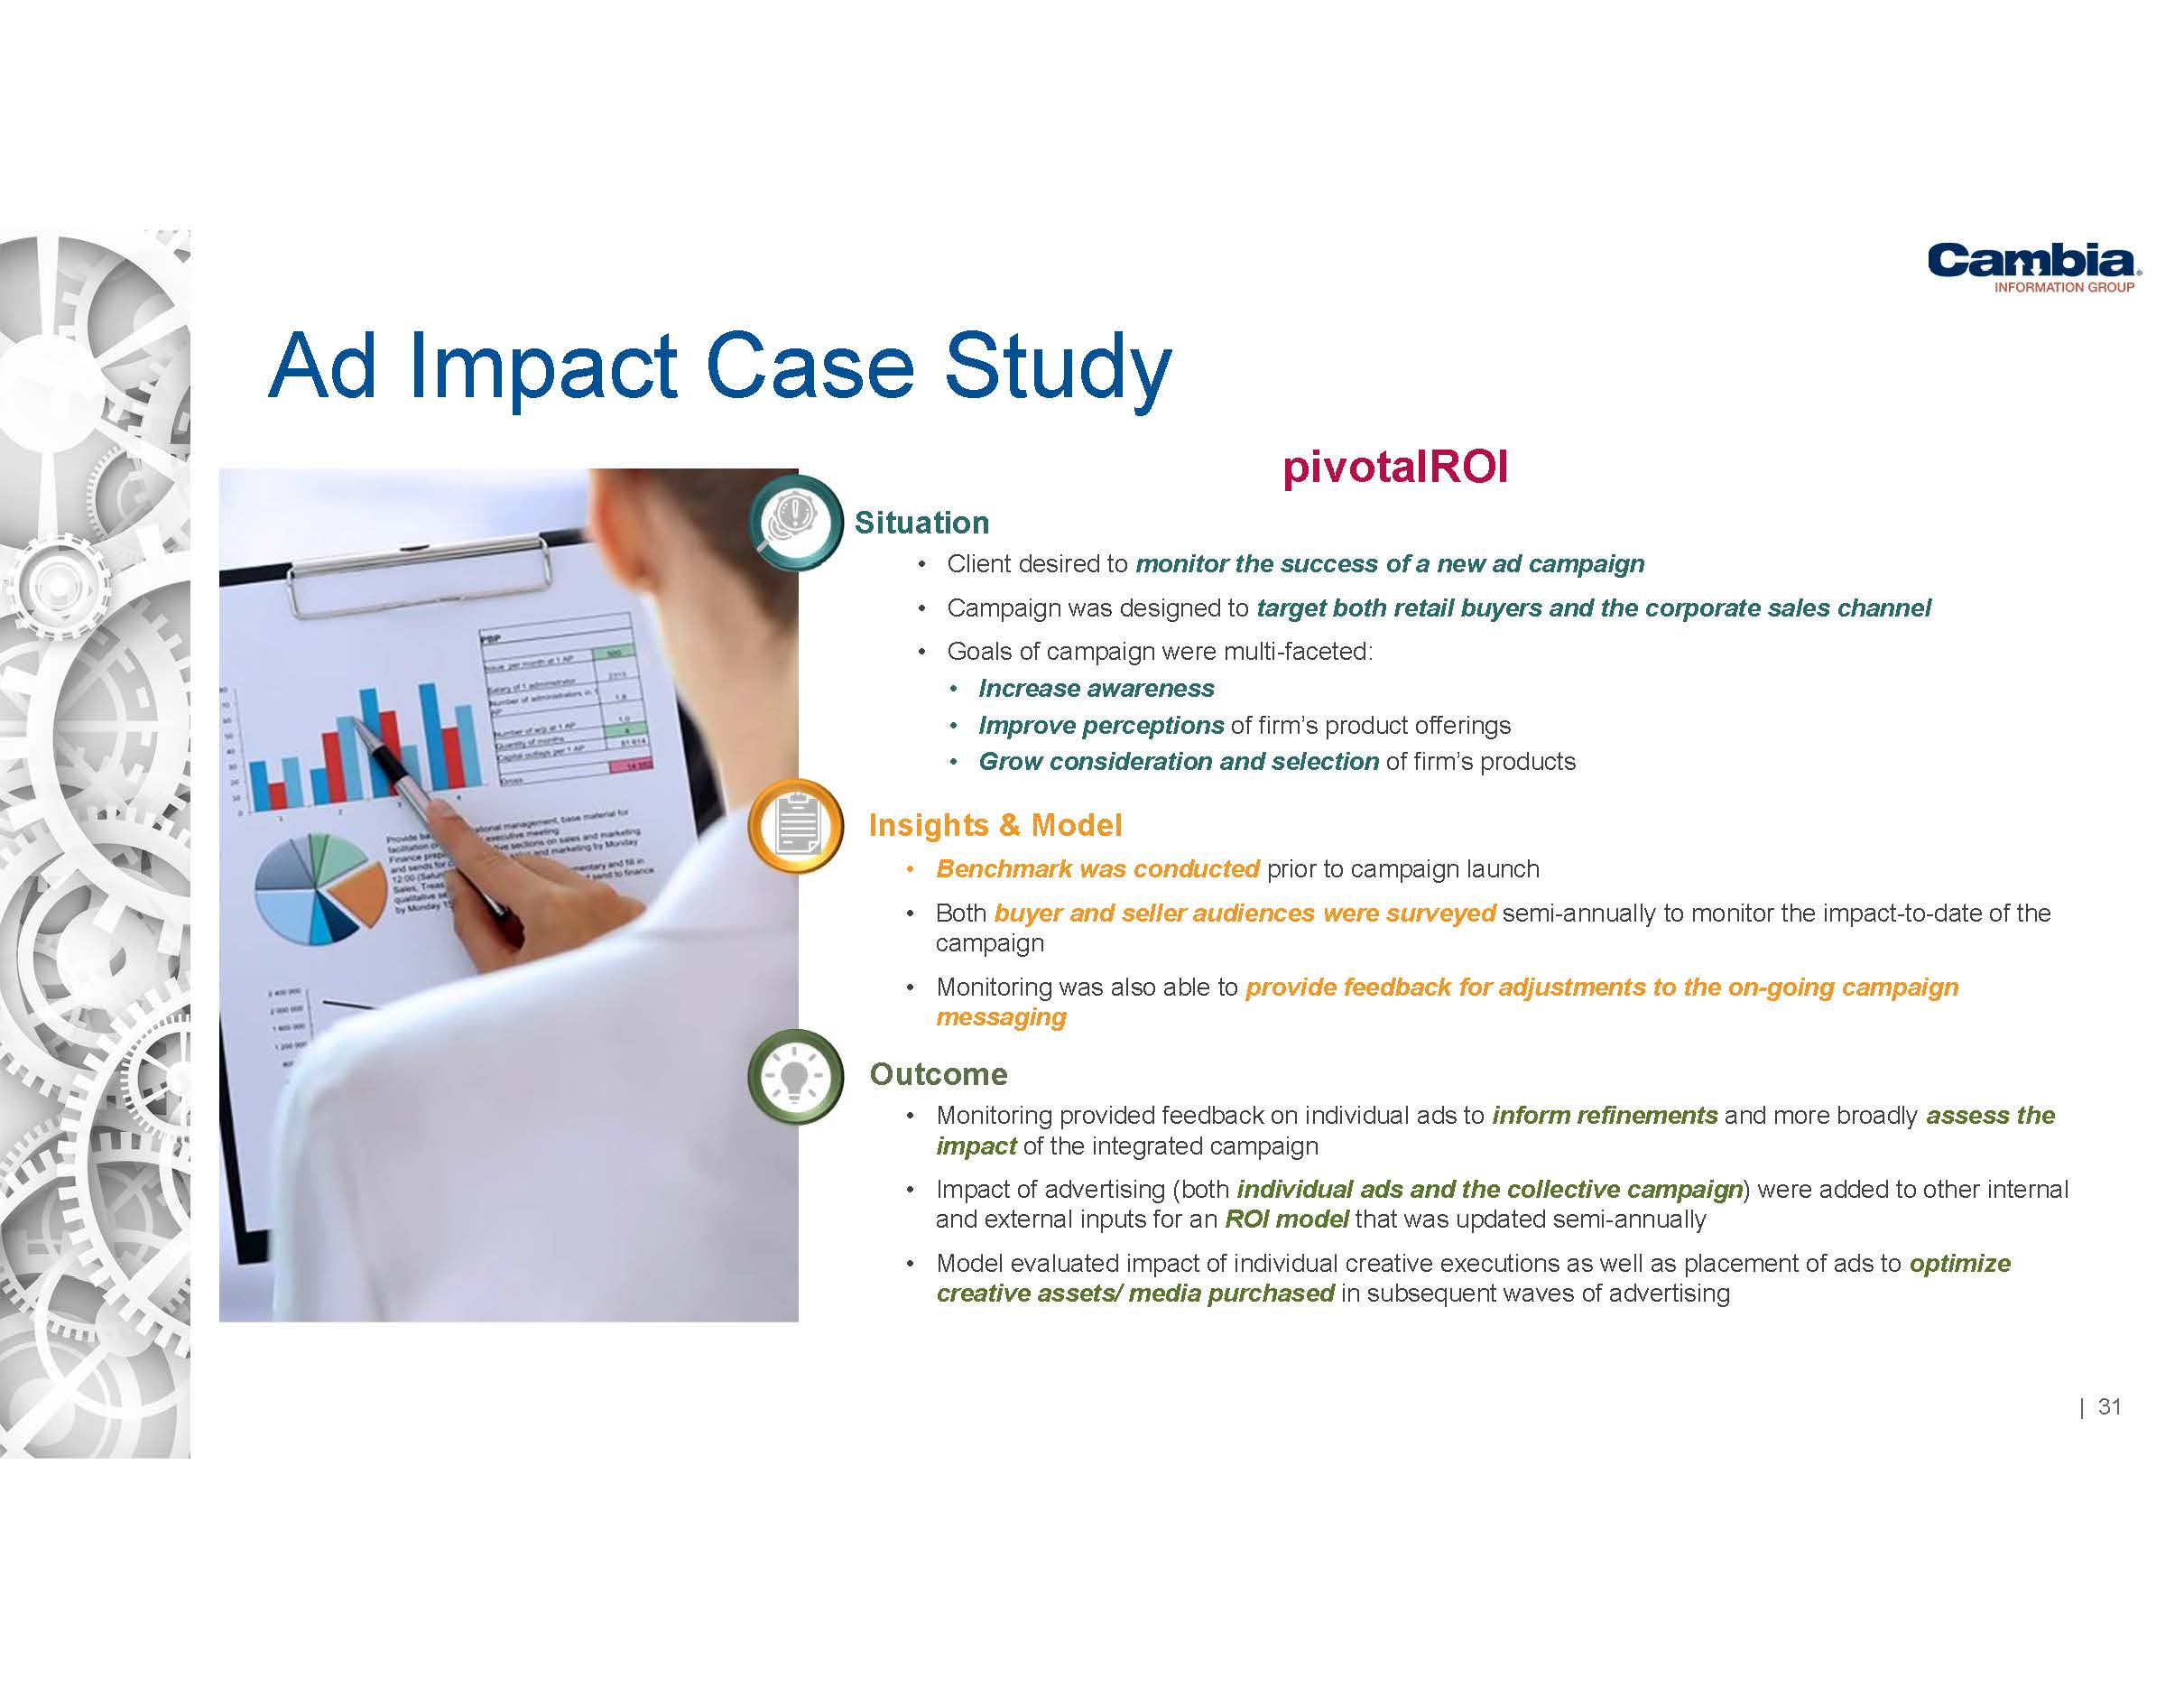 quantify advertising impact